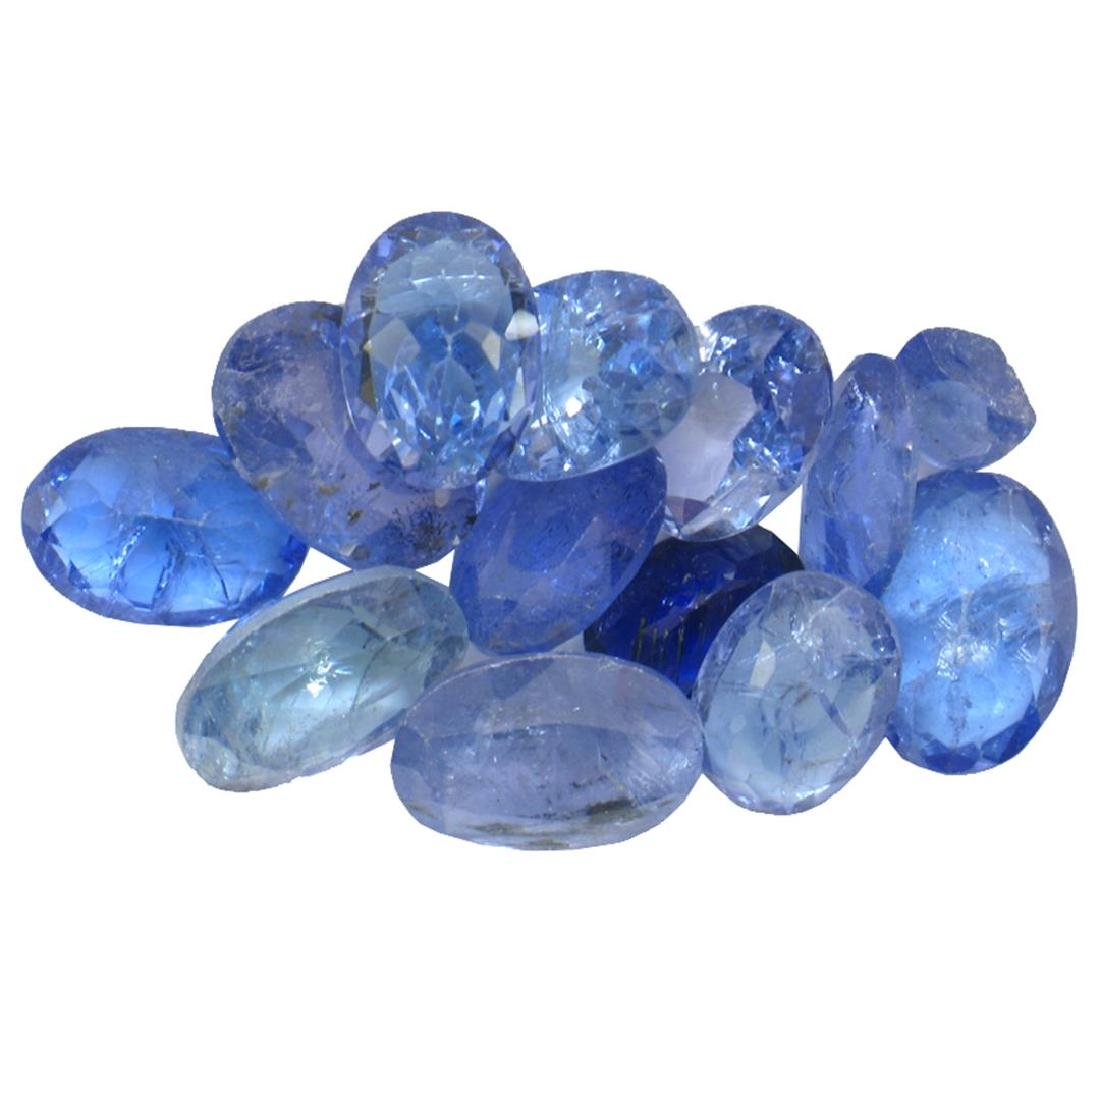 11.4 ctw Oval Mixed Tanzanite Parcel